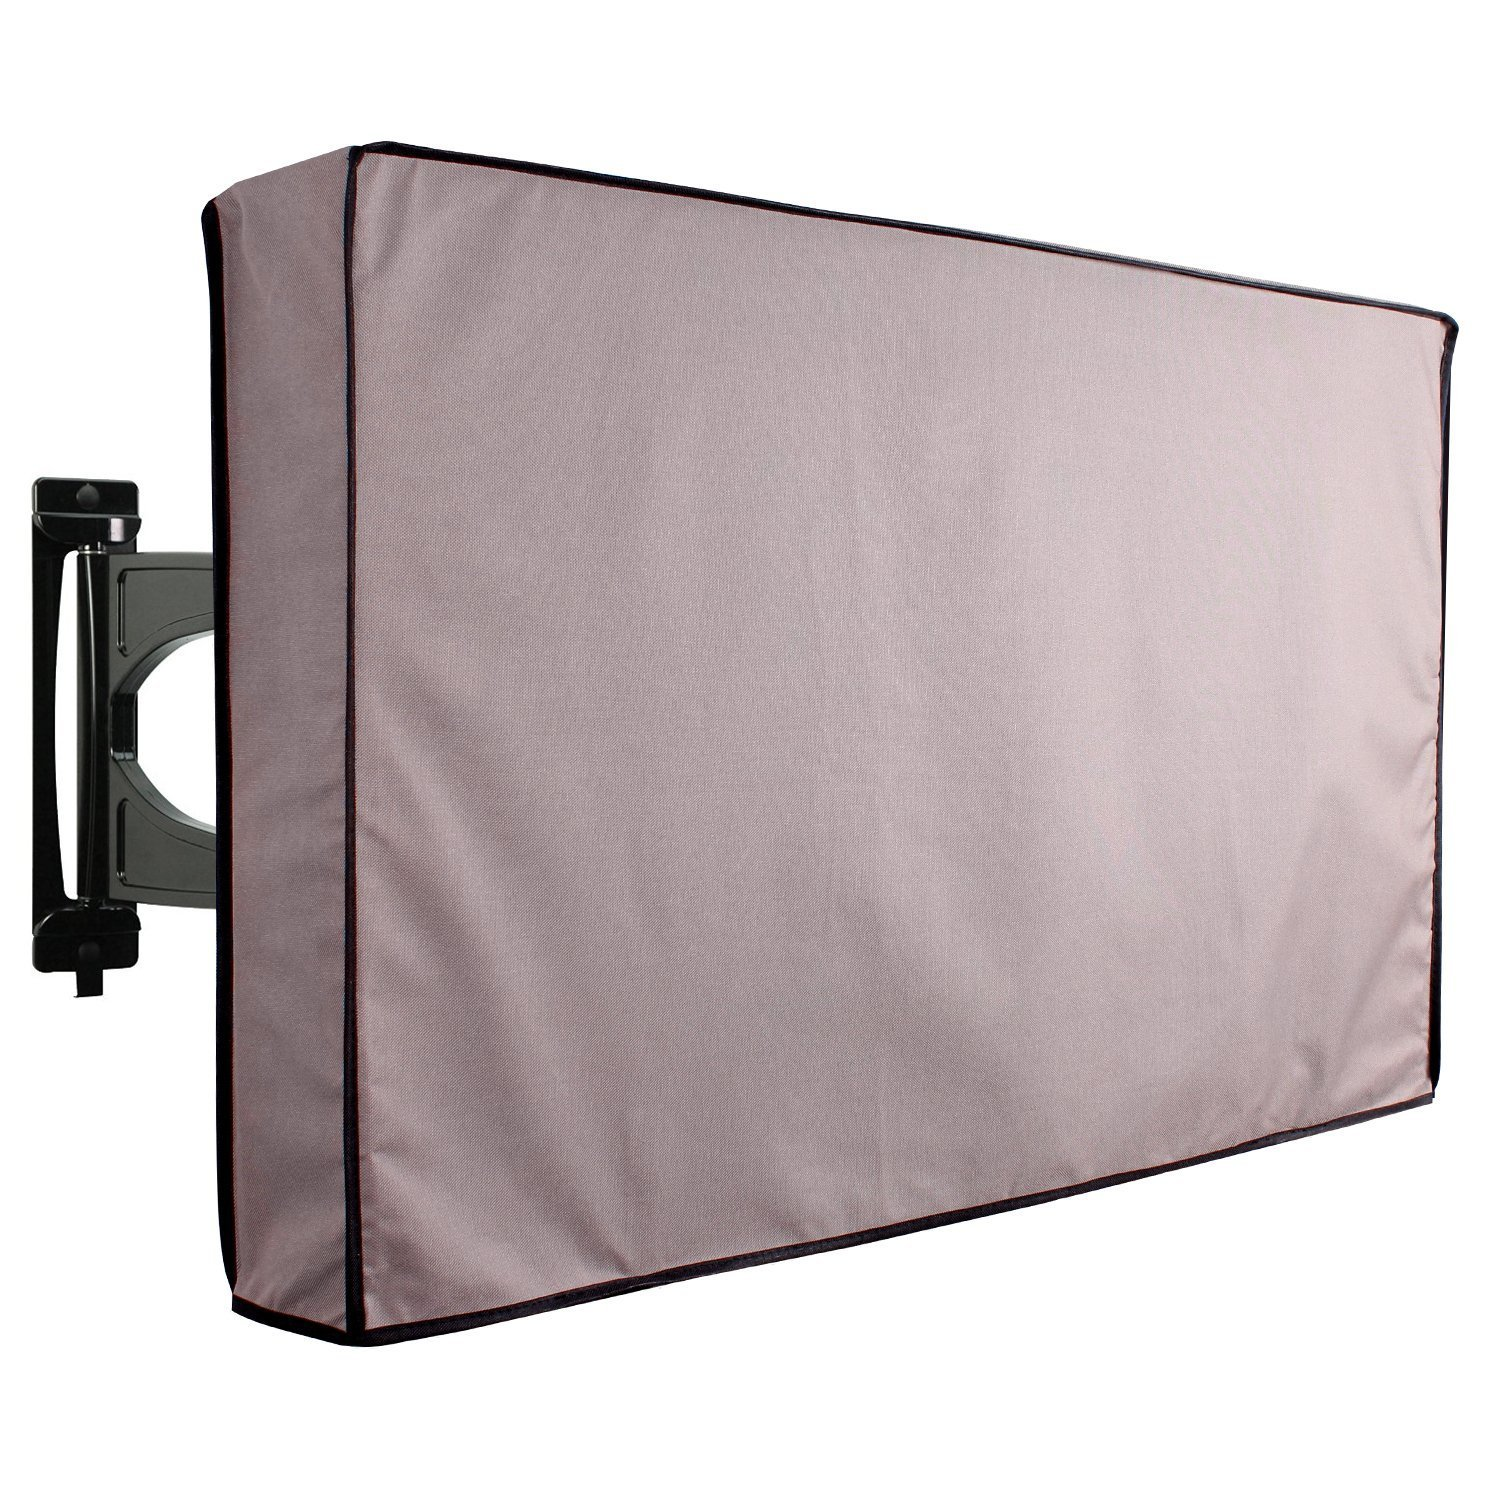 KHOMO GEAR - TITAN Series - Outdoor TV Cover Weatherproof Universal Protector for 30'' - 32'' LCD, LED, Television Sets - Works  with Most  Mounts & Stands. Built In Remote Controller Storage - Gray